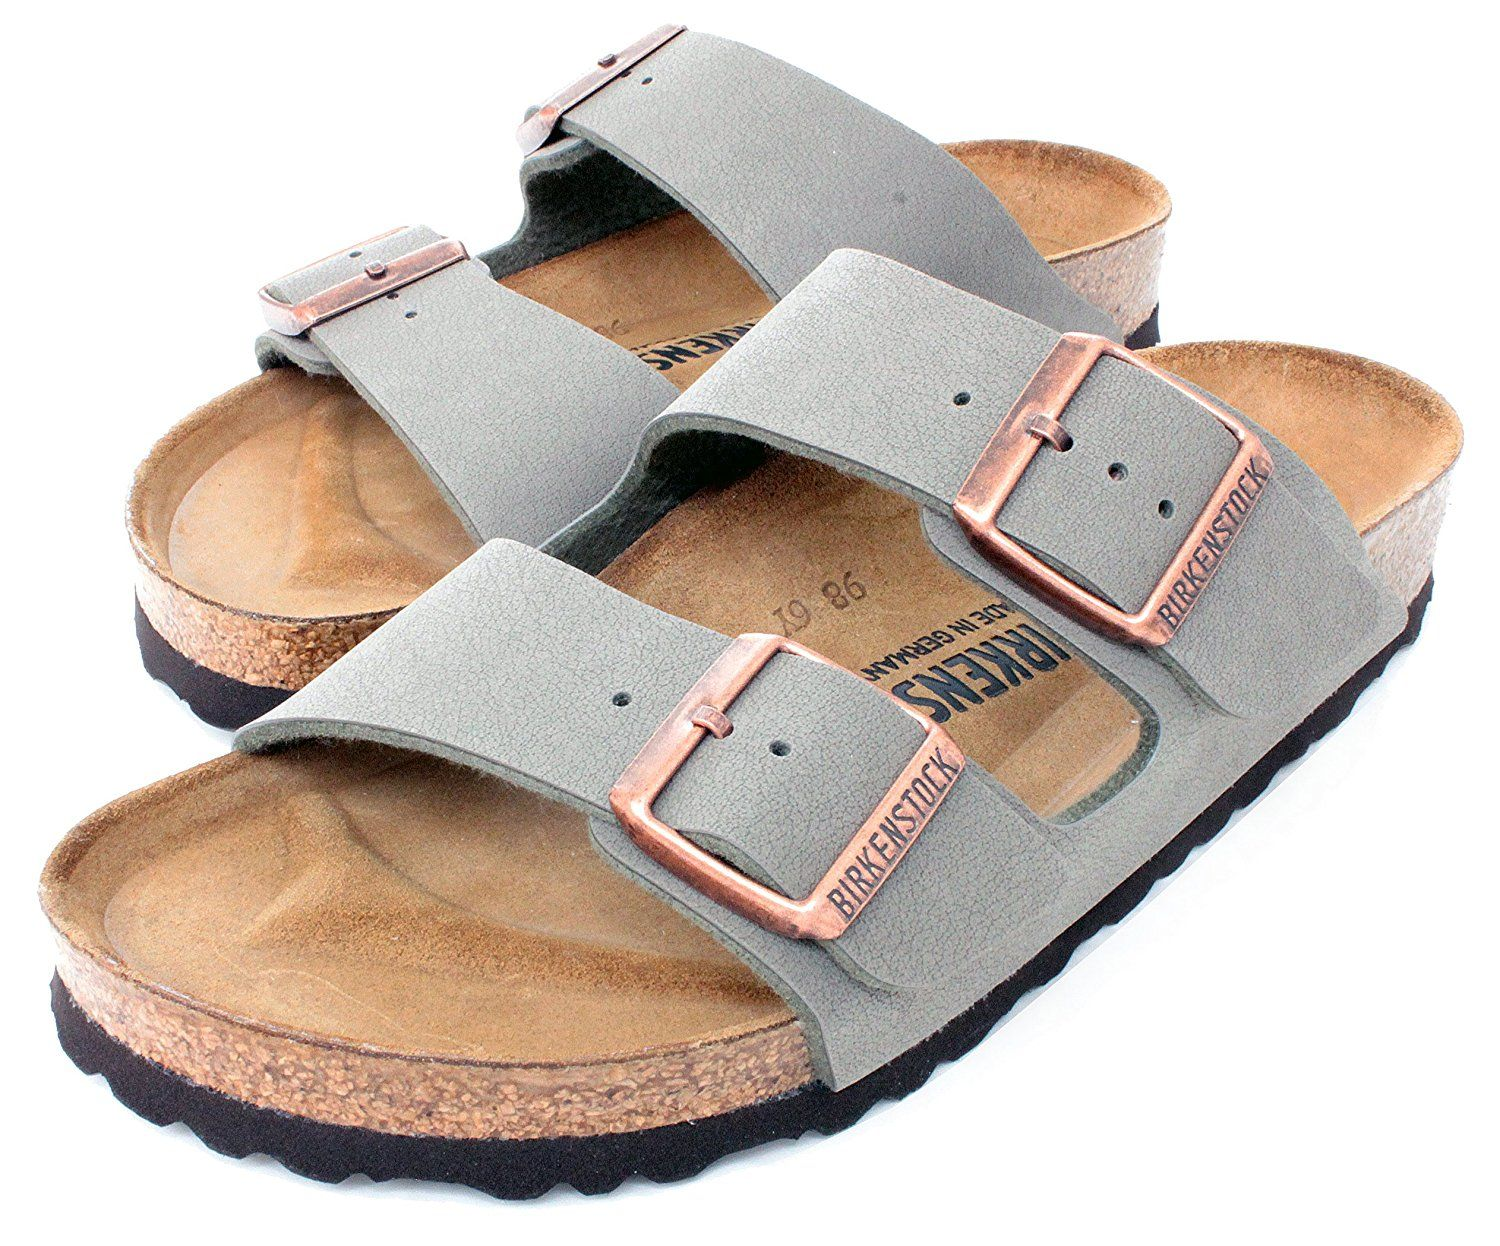 Birkenstock Arizona 2-Strap Women s Sandals in Stone Birko-Flor (39 N EU -  Narrow) -- Insider s special review you can t miss. Read more   Outdoor  sandals cb1fd22e35a